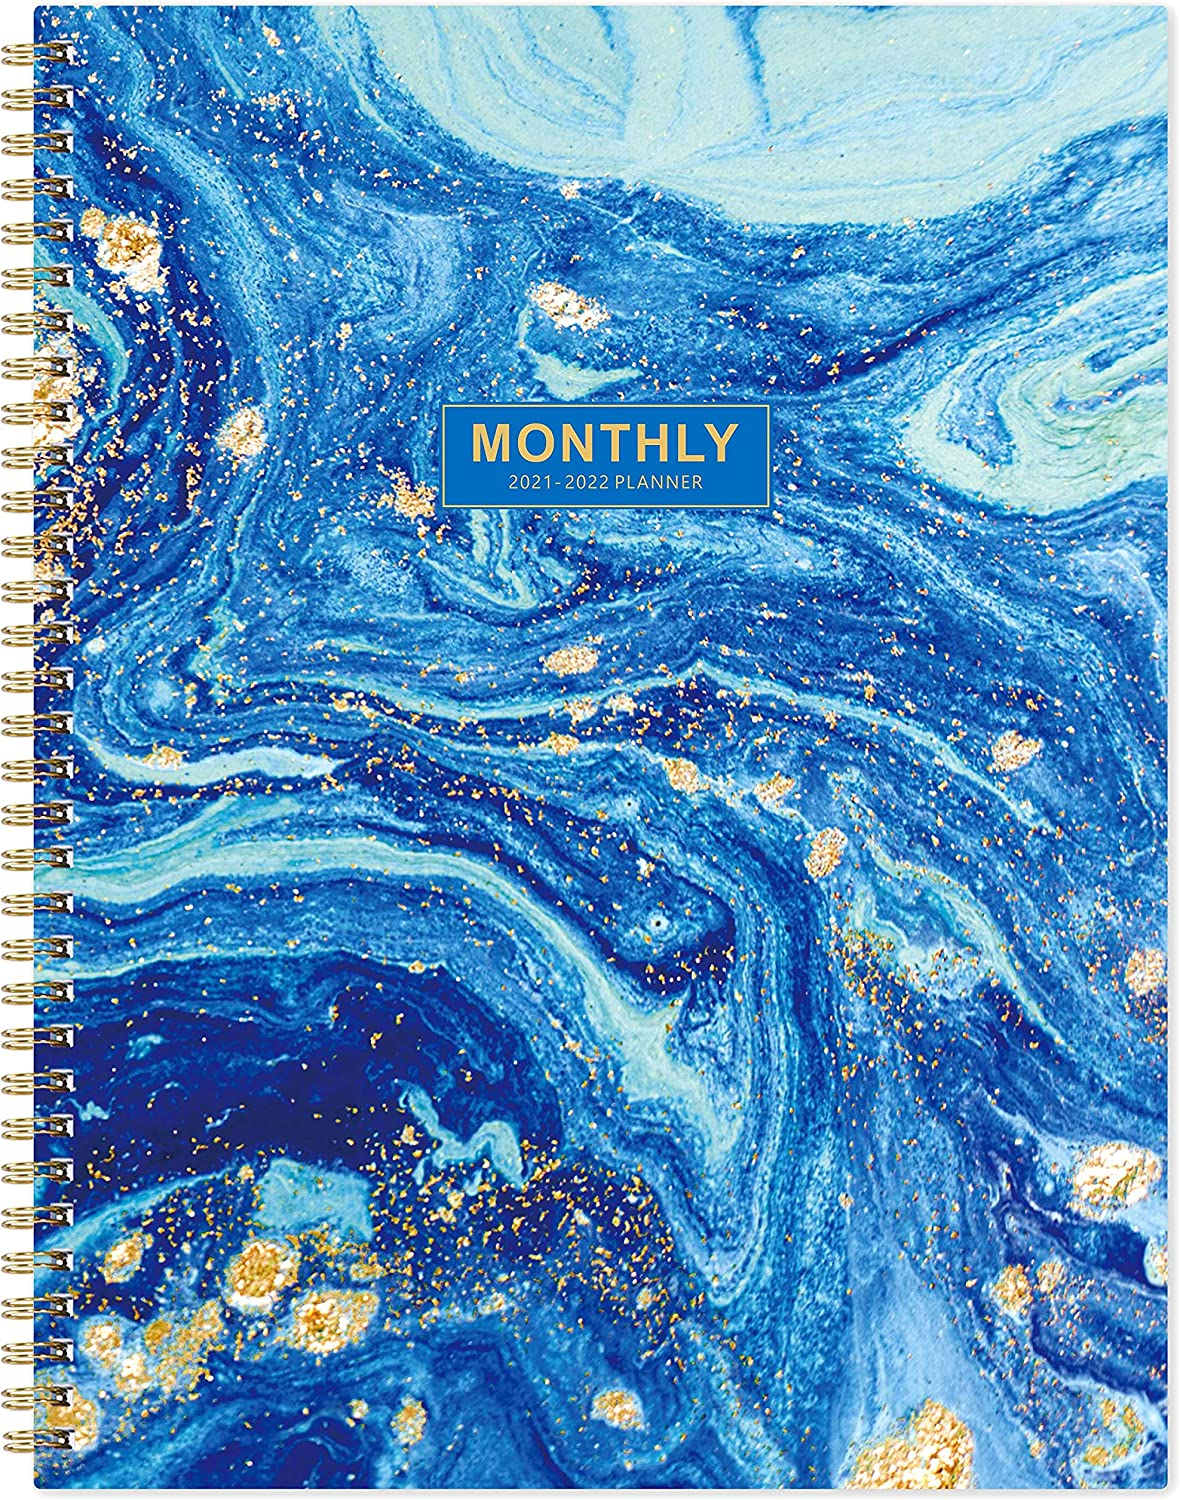 2021-2022 Monthly Planner/Calendar - 18 Month Planner with Tabs & 13 Note Pages, 9